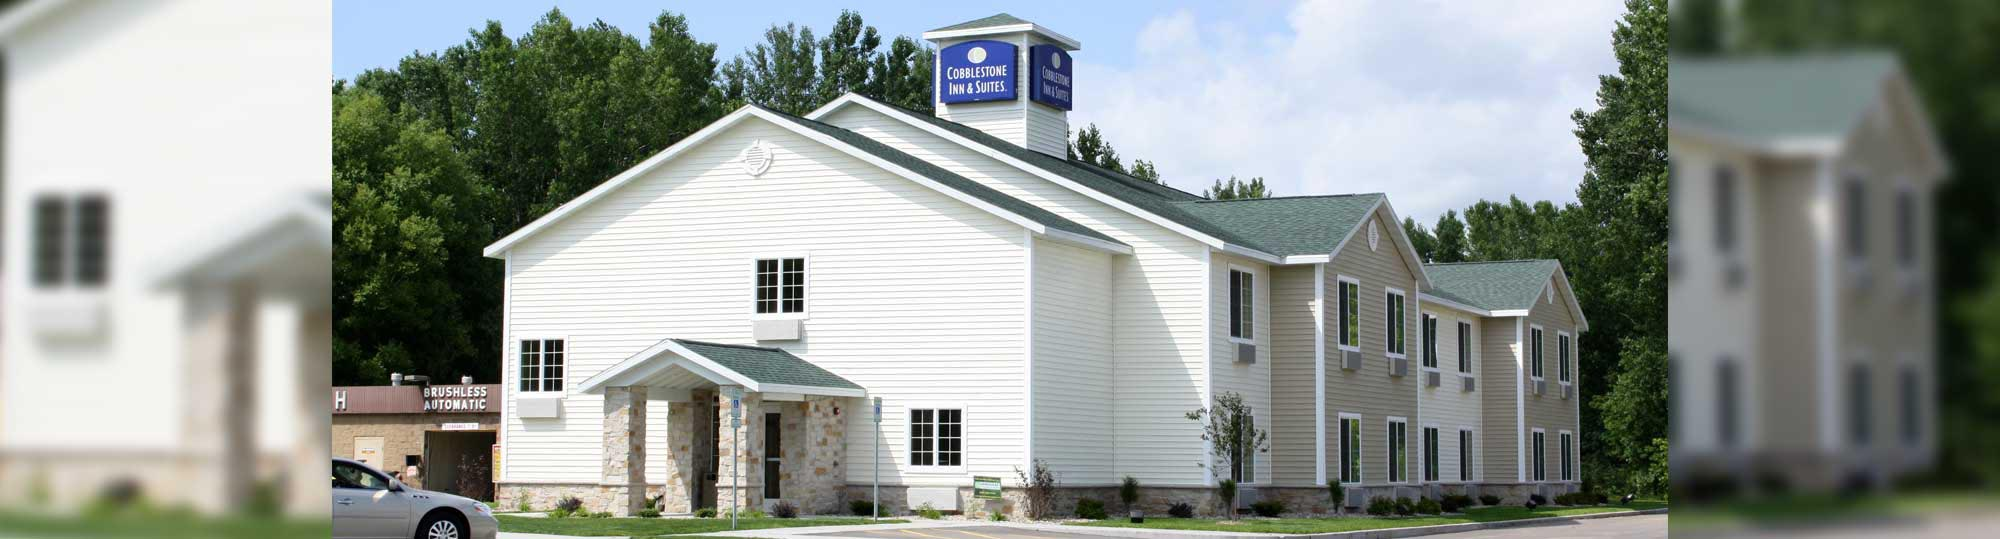 Cobblestone Inn and Suites Brillion